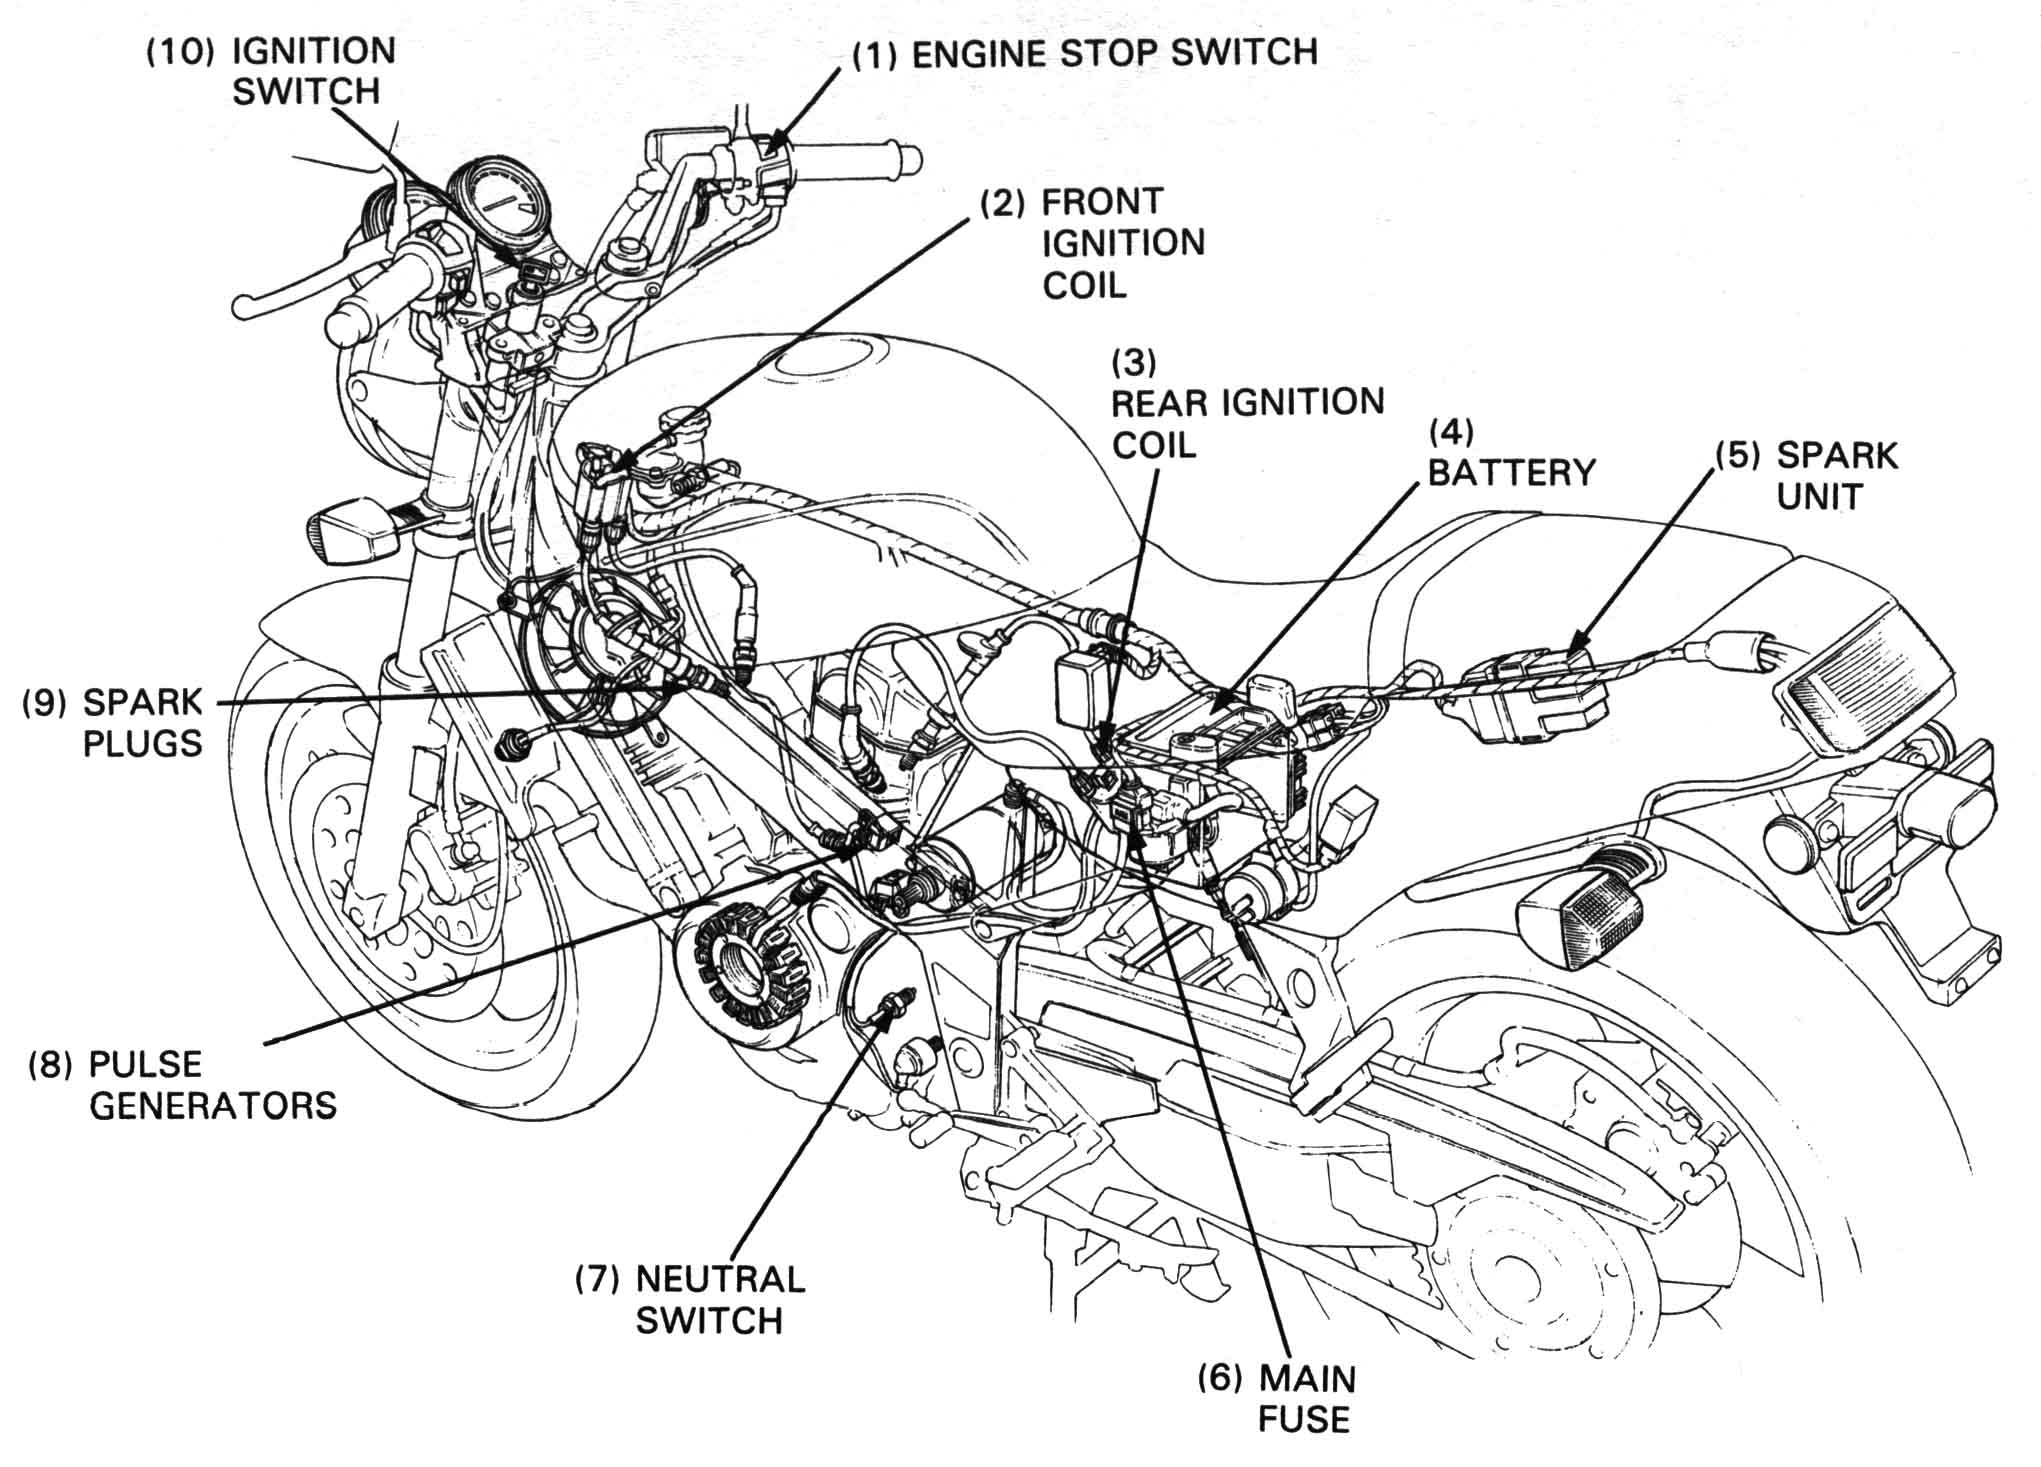 Honda nt650 service manual section 16 ignition system really big verson asfbconference2016 Gallery